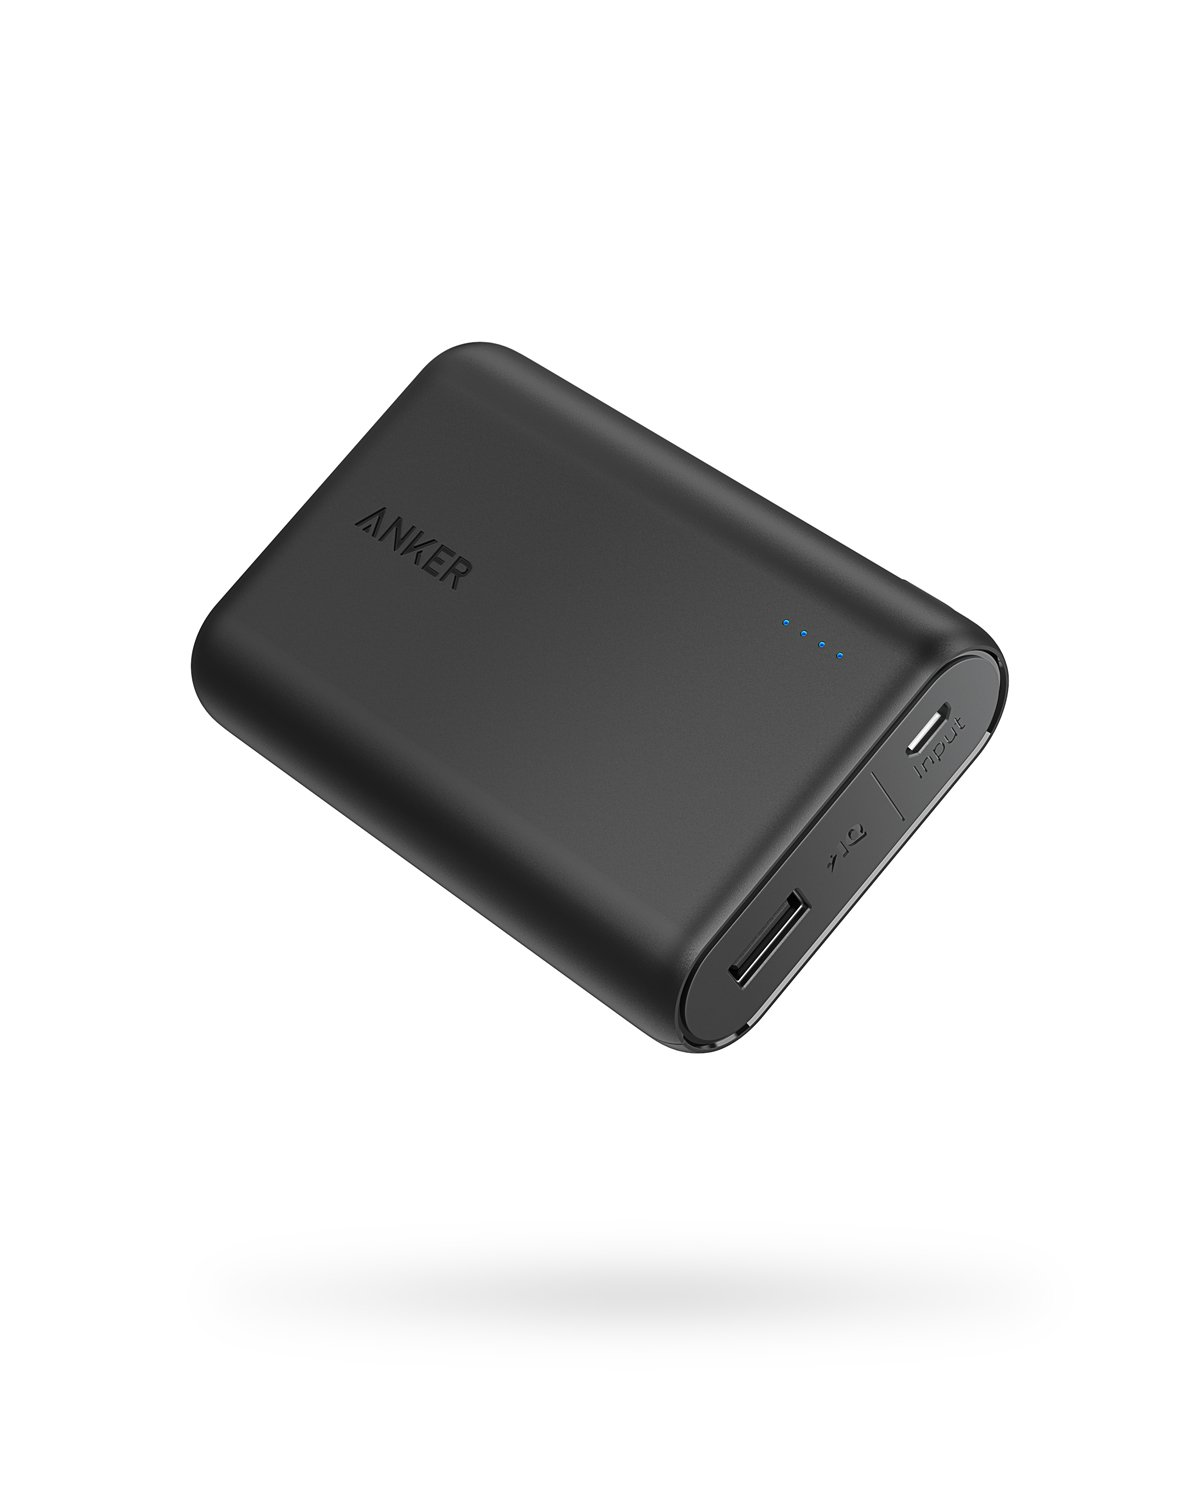 Anker PowerCore 10000 Portable Charger, One Of The Smallest And Lightest 10000mAh Power Bank, Ultra-Compact